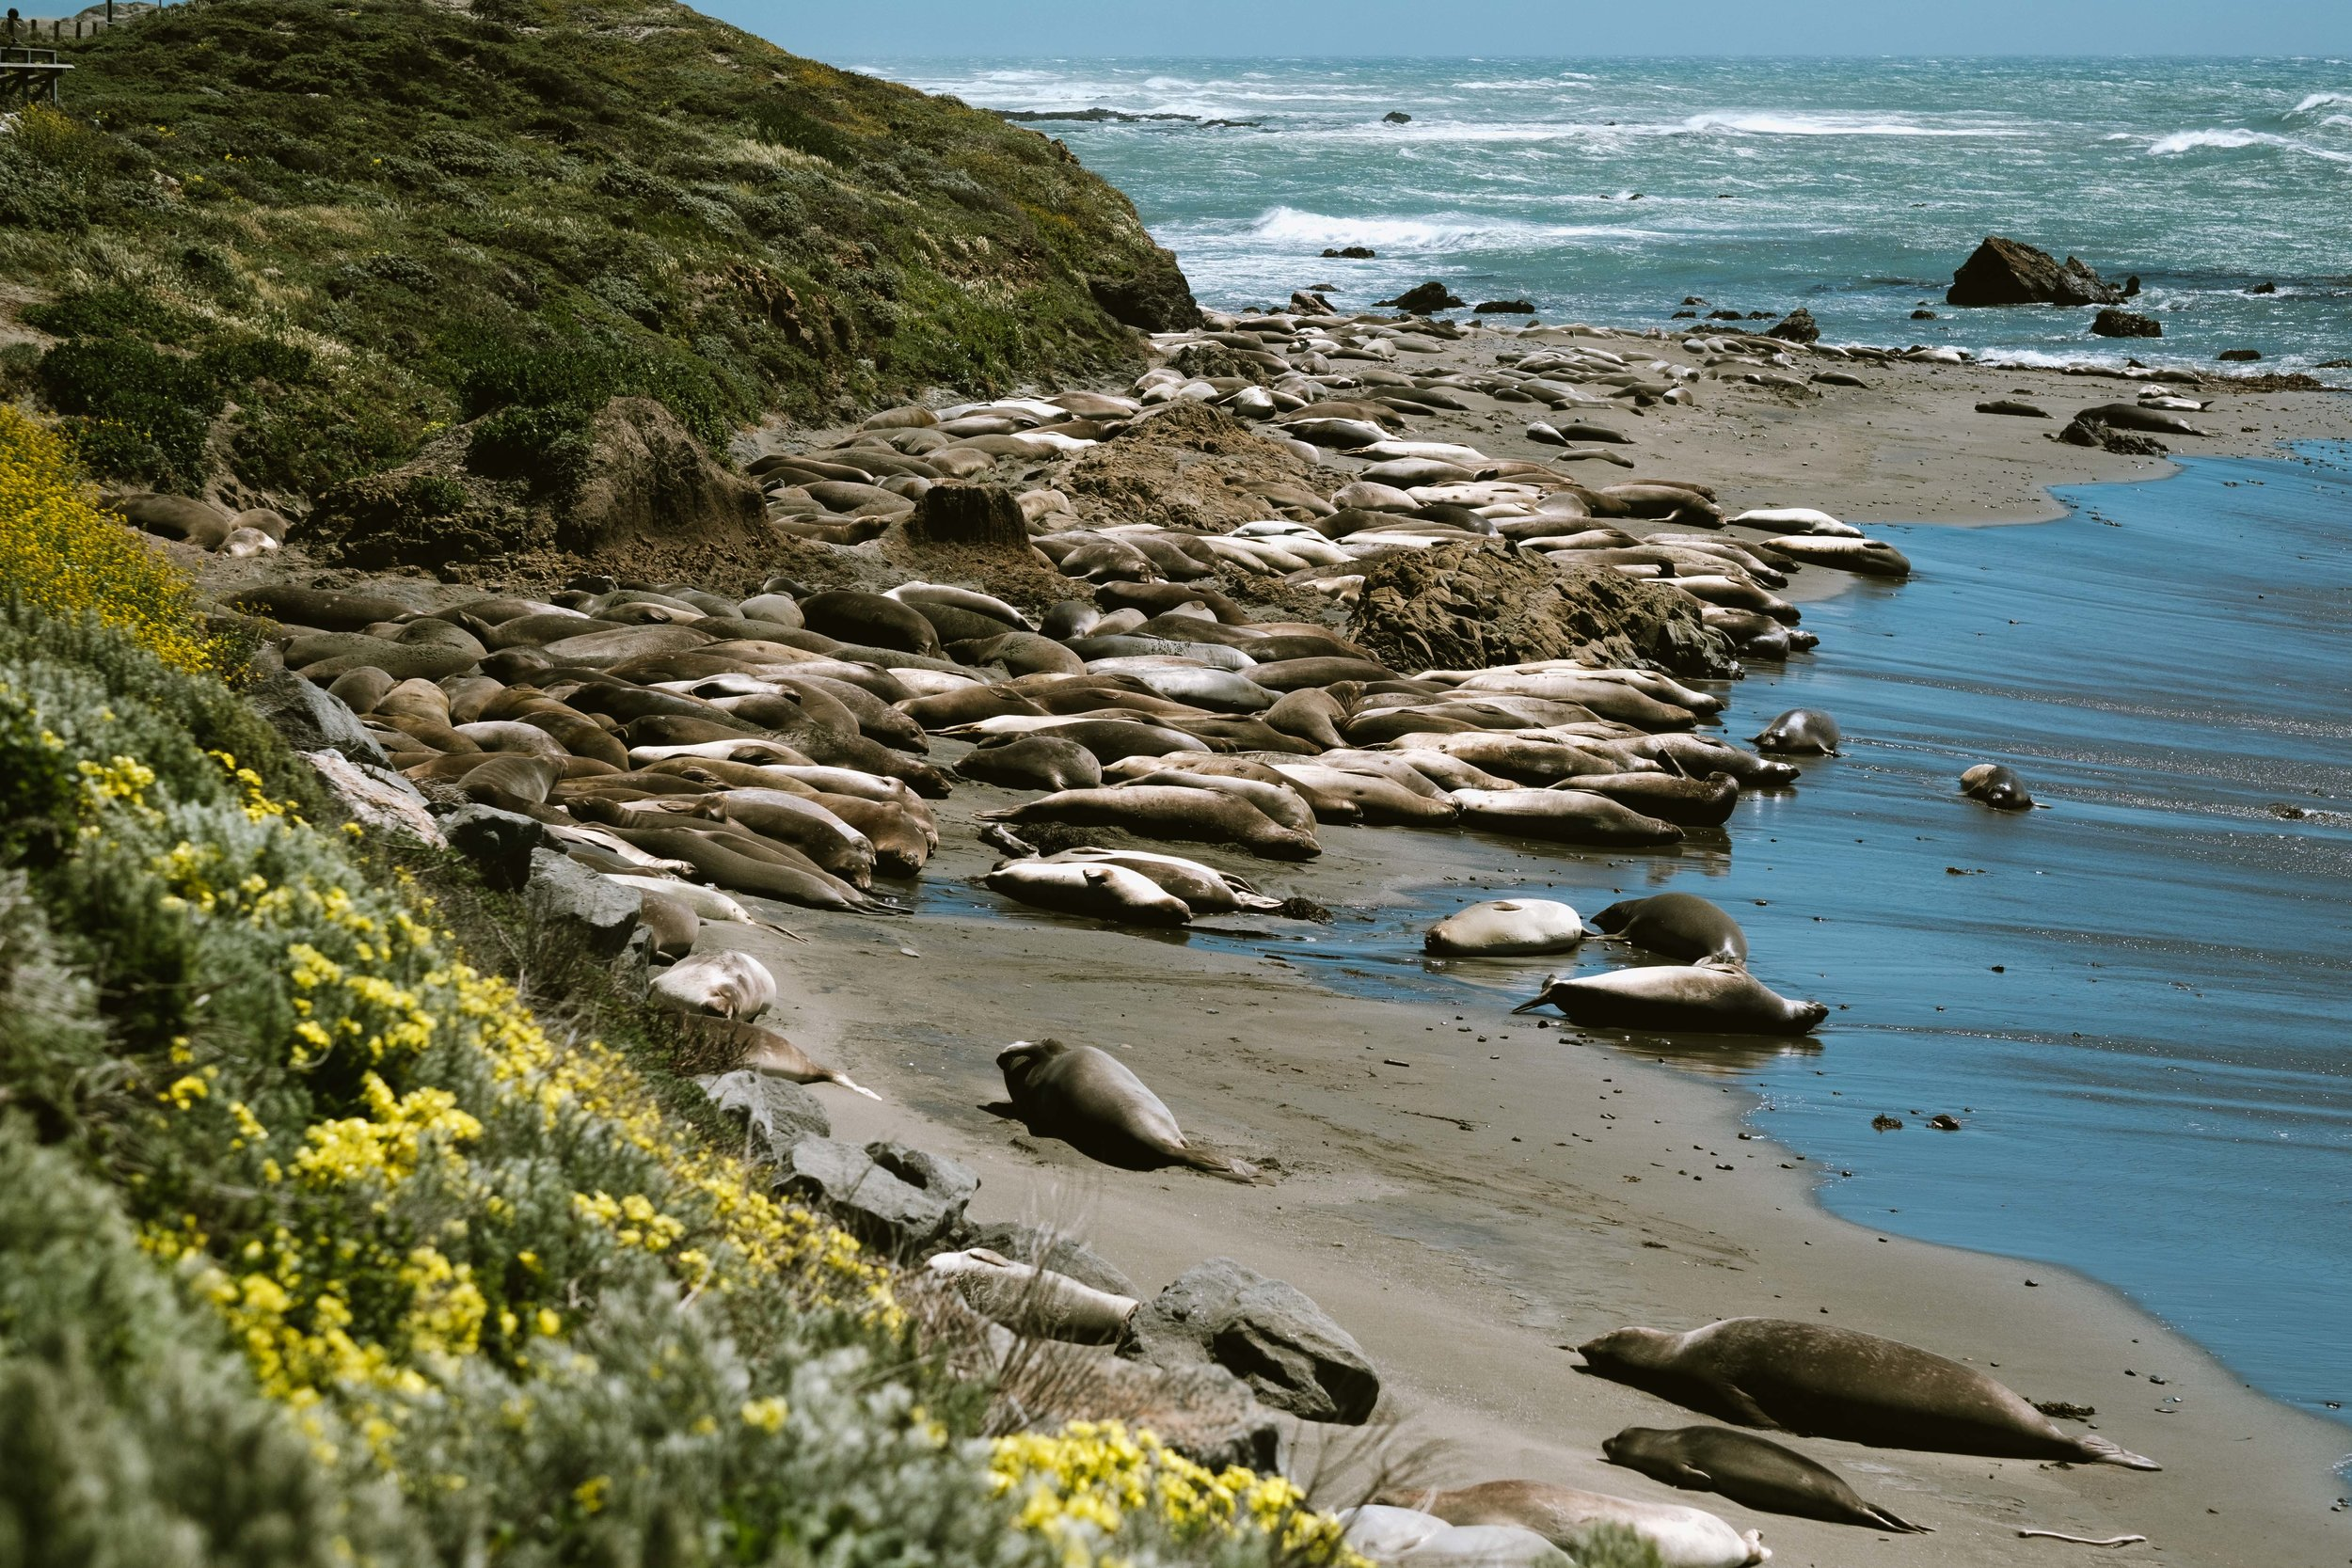 Cookwilltravel - Huckberry - Big Sur > Los Angeles - DSCF7127.jpg